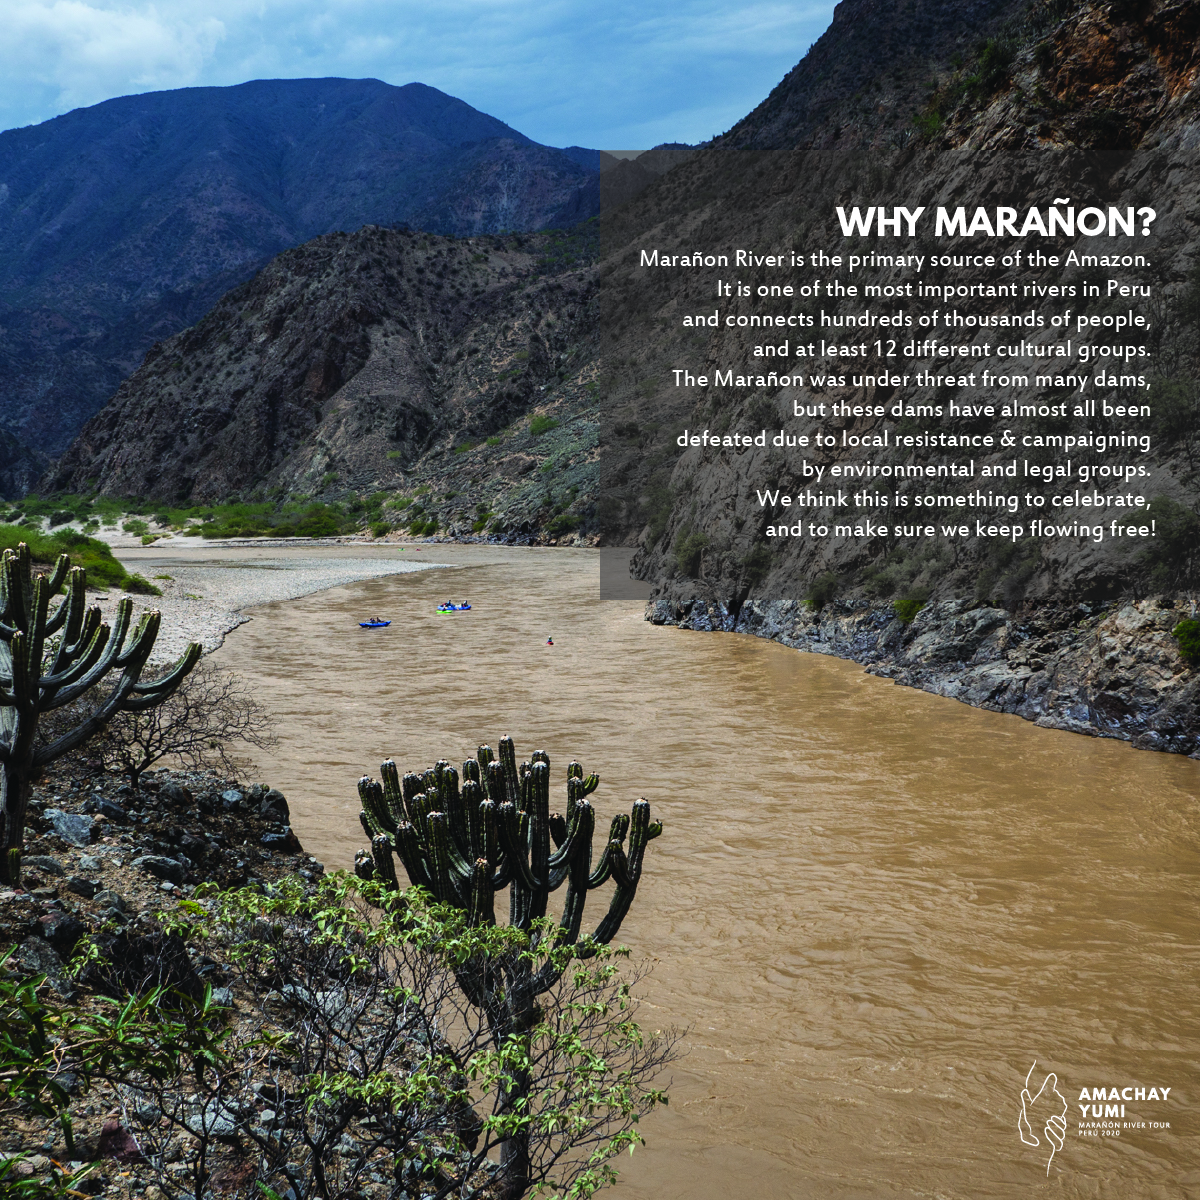 2020 Marañon River Tour Cancelled